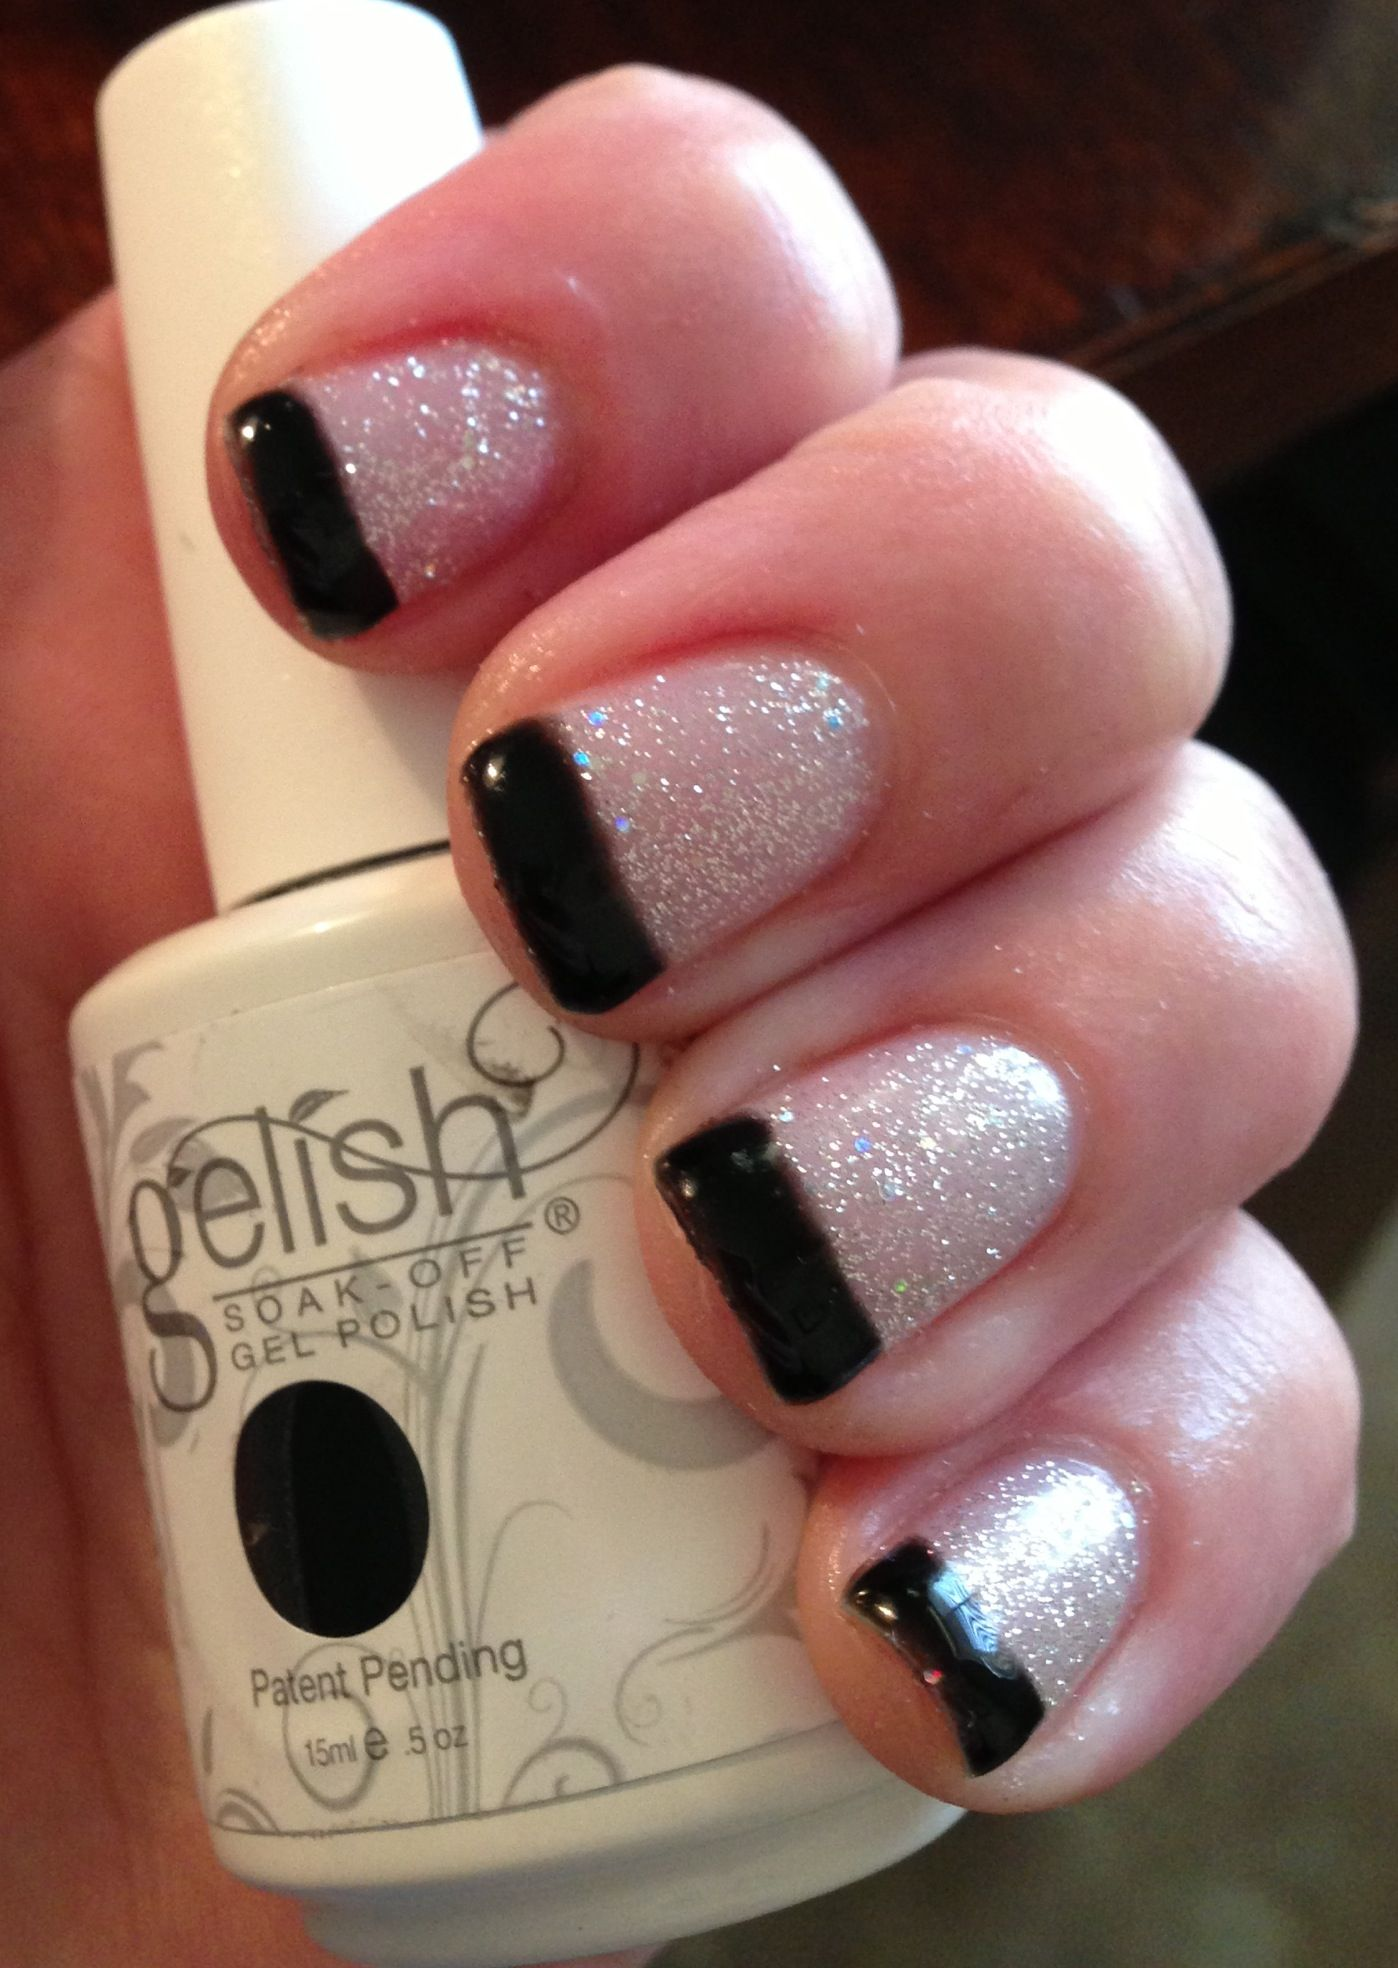 gelish glitter and black french tip nails nails nails